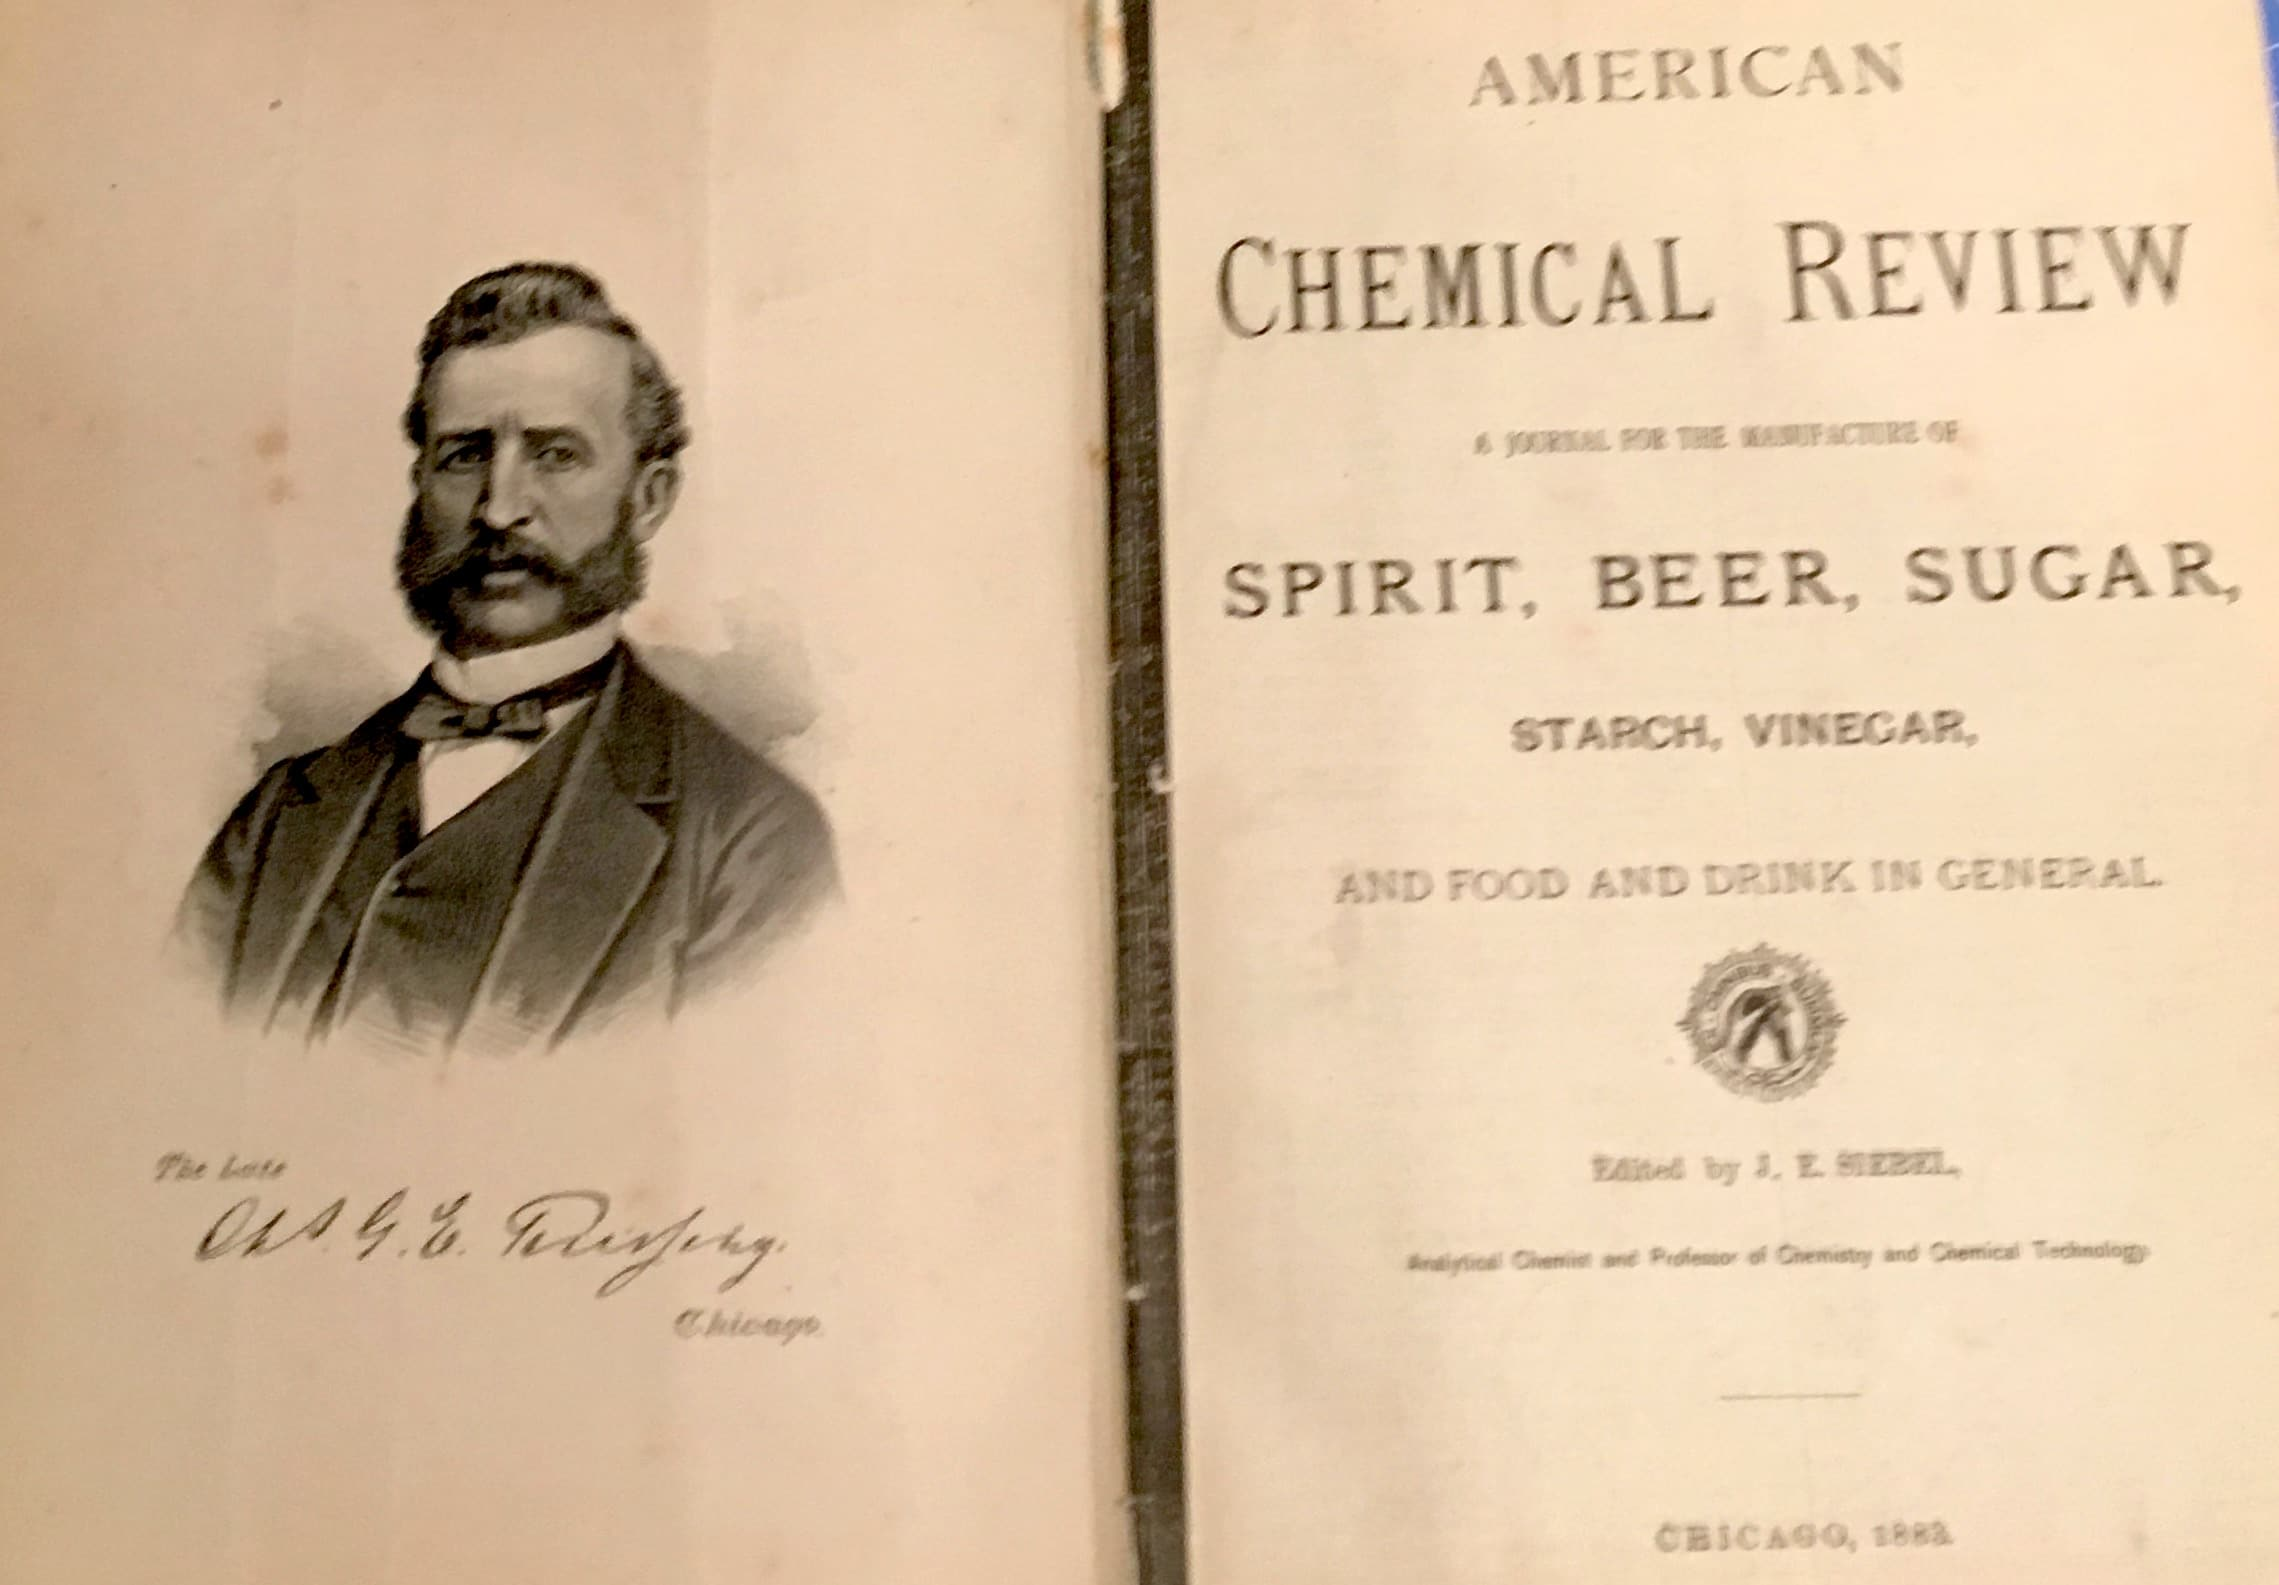 American Chemical Review